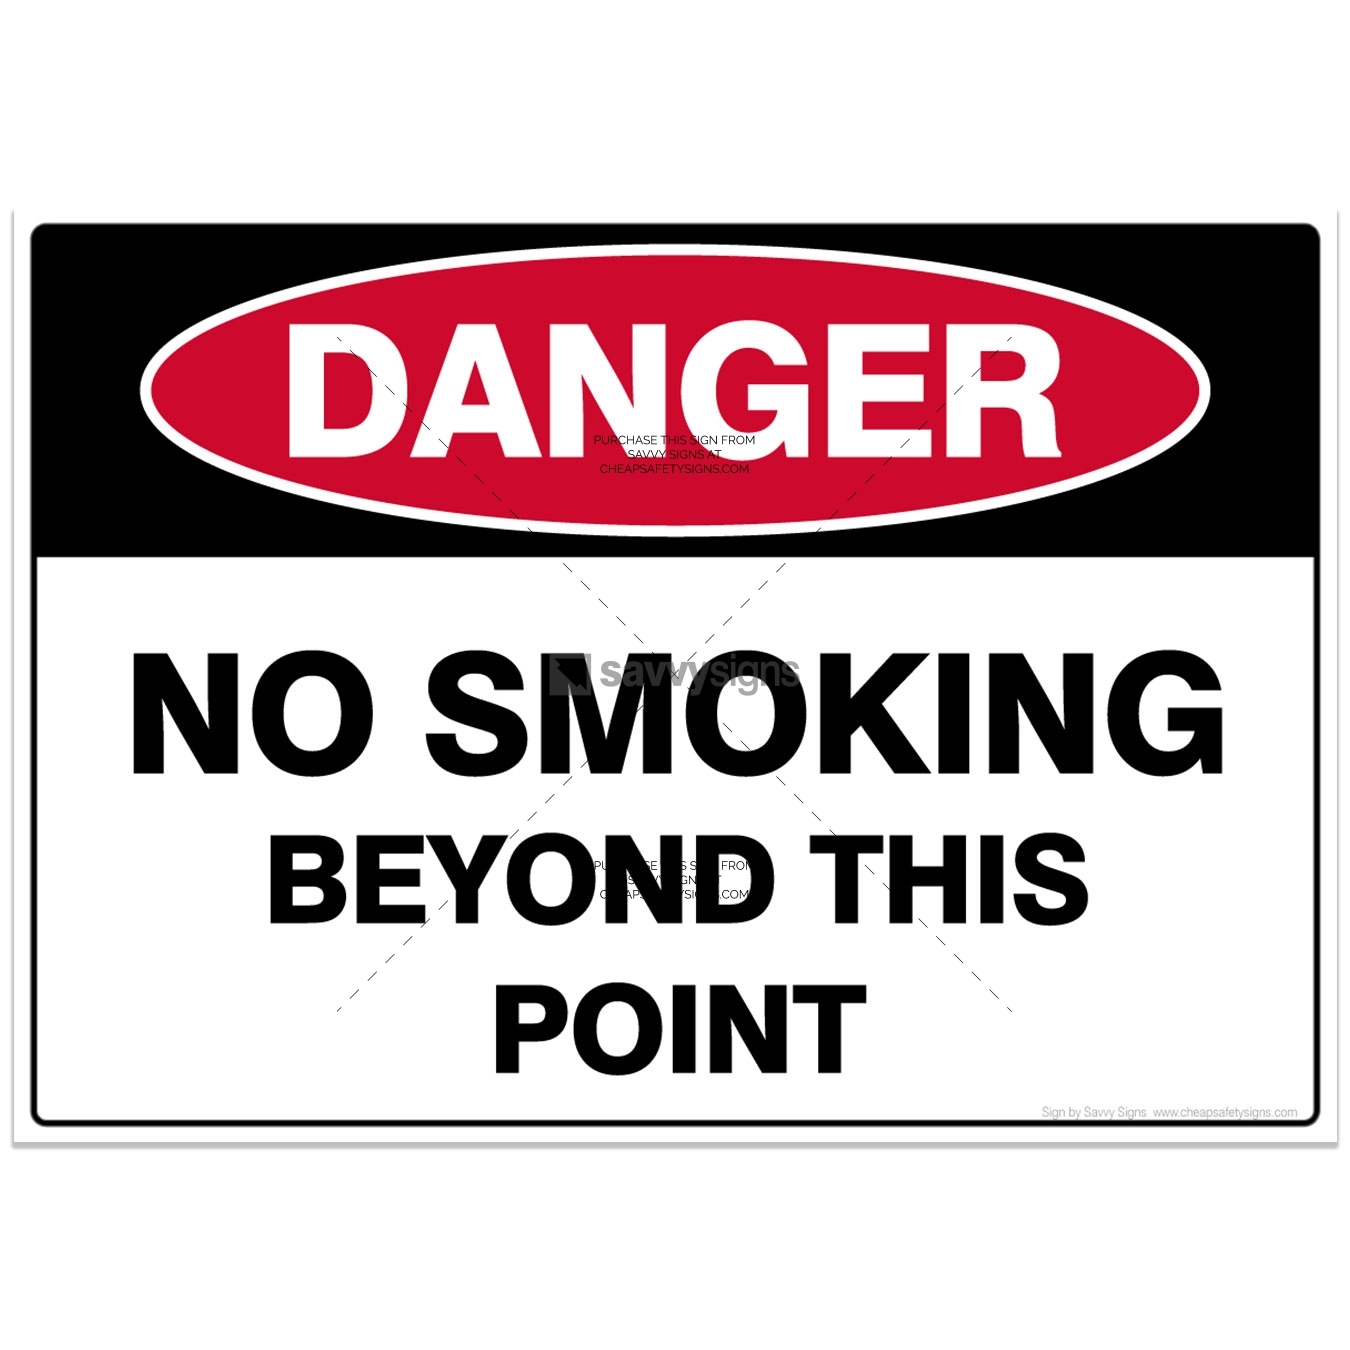 SSDAN3060-DANGER-Workplace-Safety-Signs_Savvy-Signs_v4.1